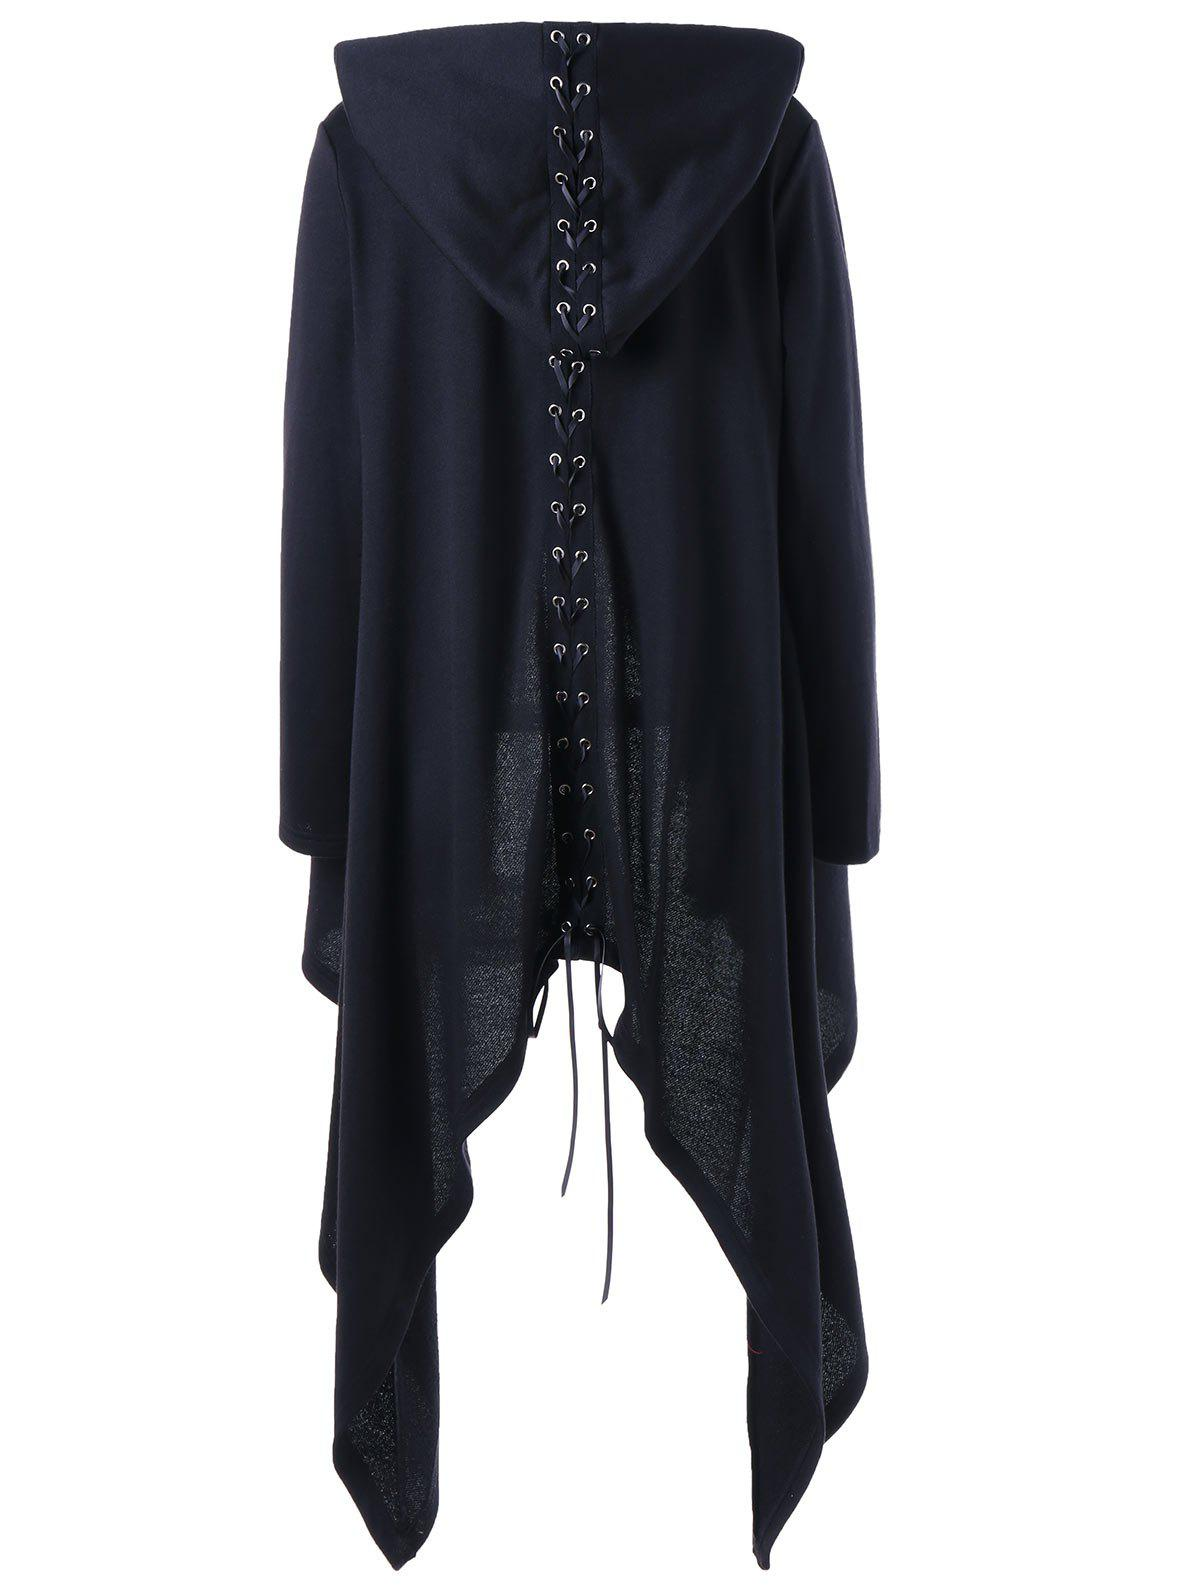 Lace Up Hooded Asymmetrical Plus Size CoatWOMEN<br><br>Size: 5XL; Color: BLACK; Clothes Type: Others; Material: Polyester; Type: Slim; Shirt Length: Long; Sleeve Length: Full; Collar: Hooded; Pattern Type: Solid; Embellishment: Criss-Cross,Draped; Style: Fashion; Season: Fall,Spring; Weight: 0.8260kg; Package Contents: 1 x Coat;